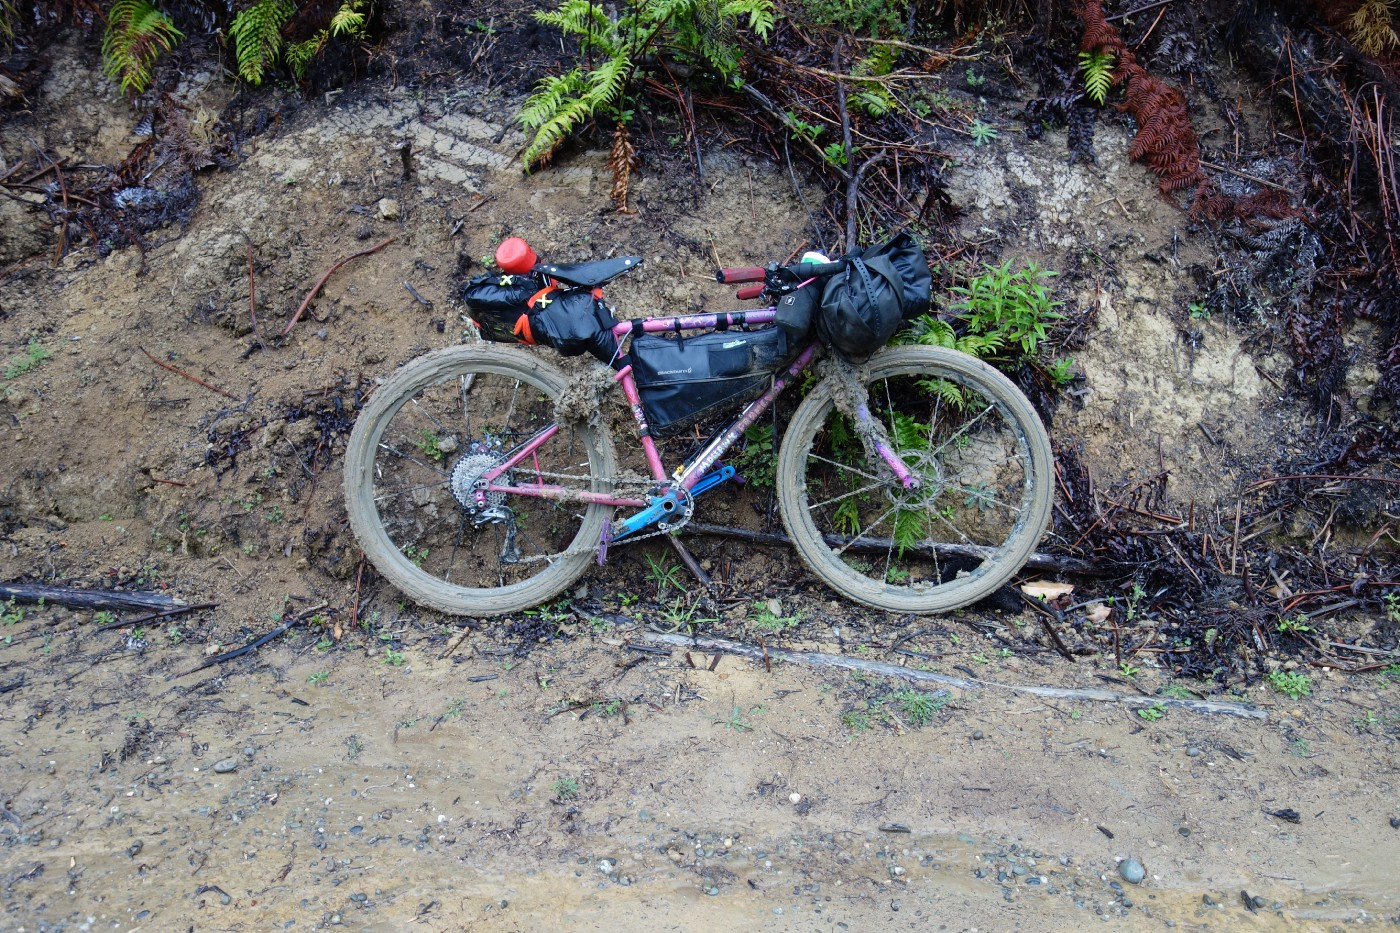 Sarah's bike is leant against a muddy bank. The wheels are completely clogged with thick mud.